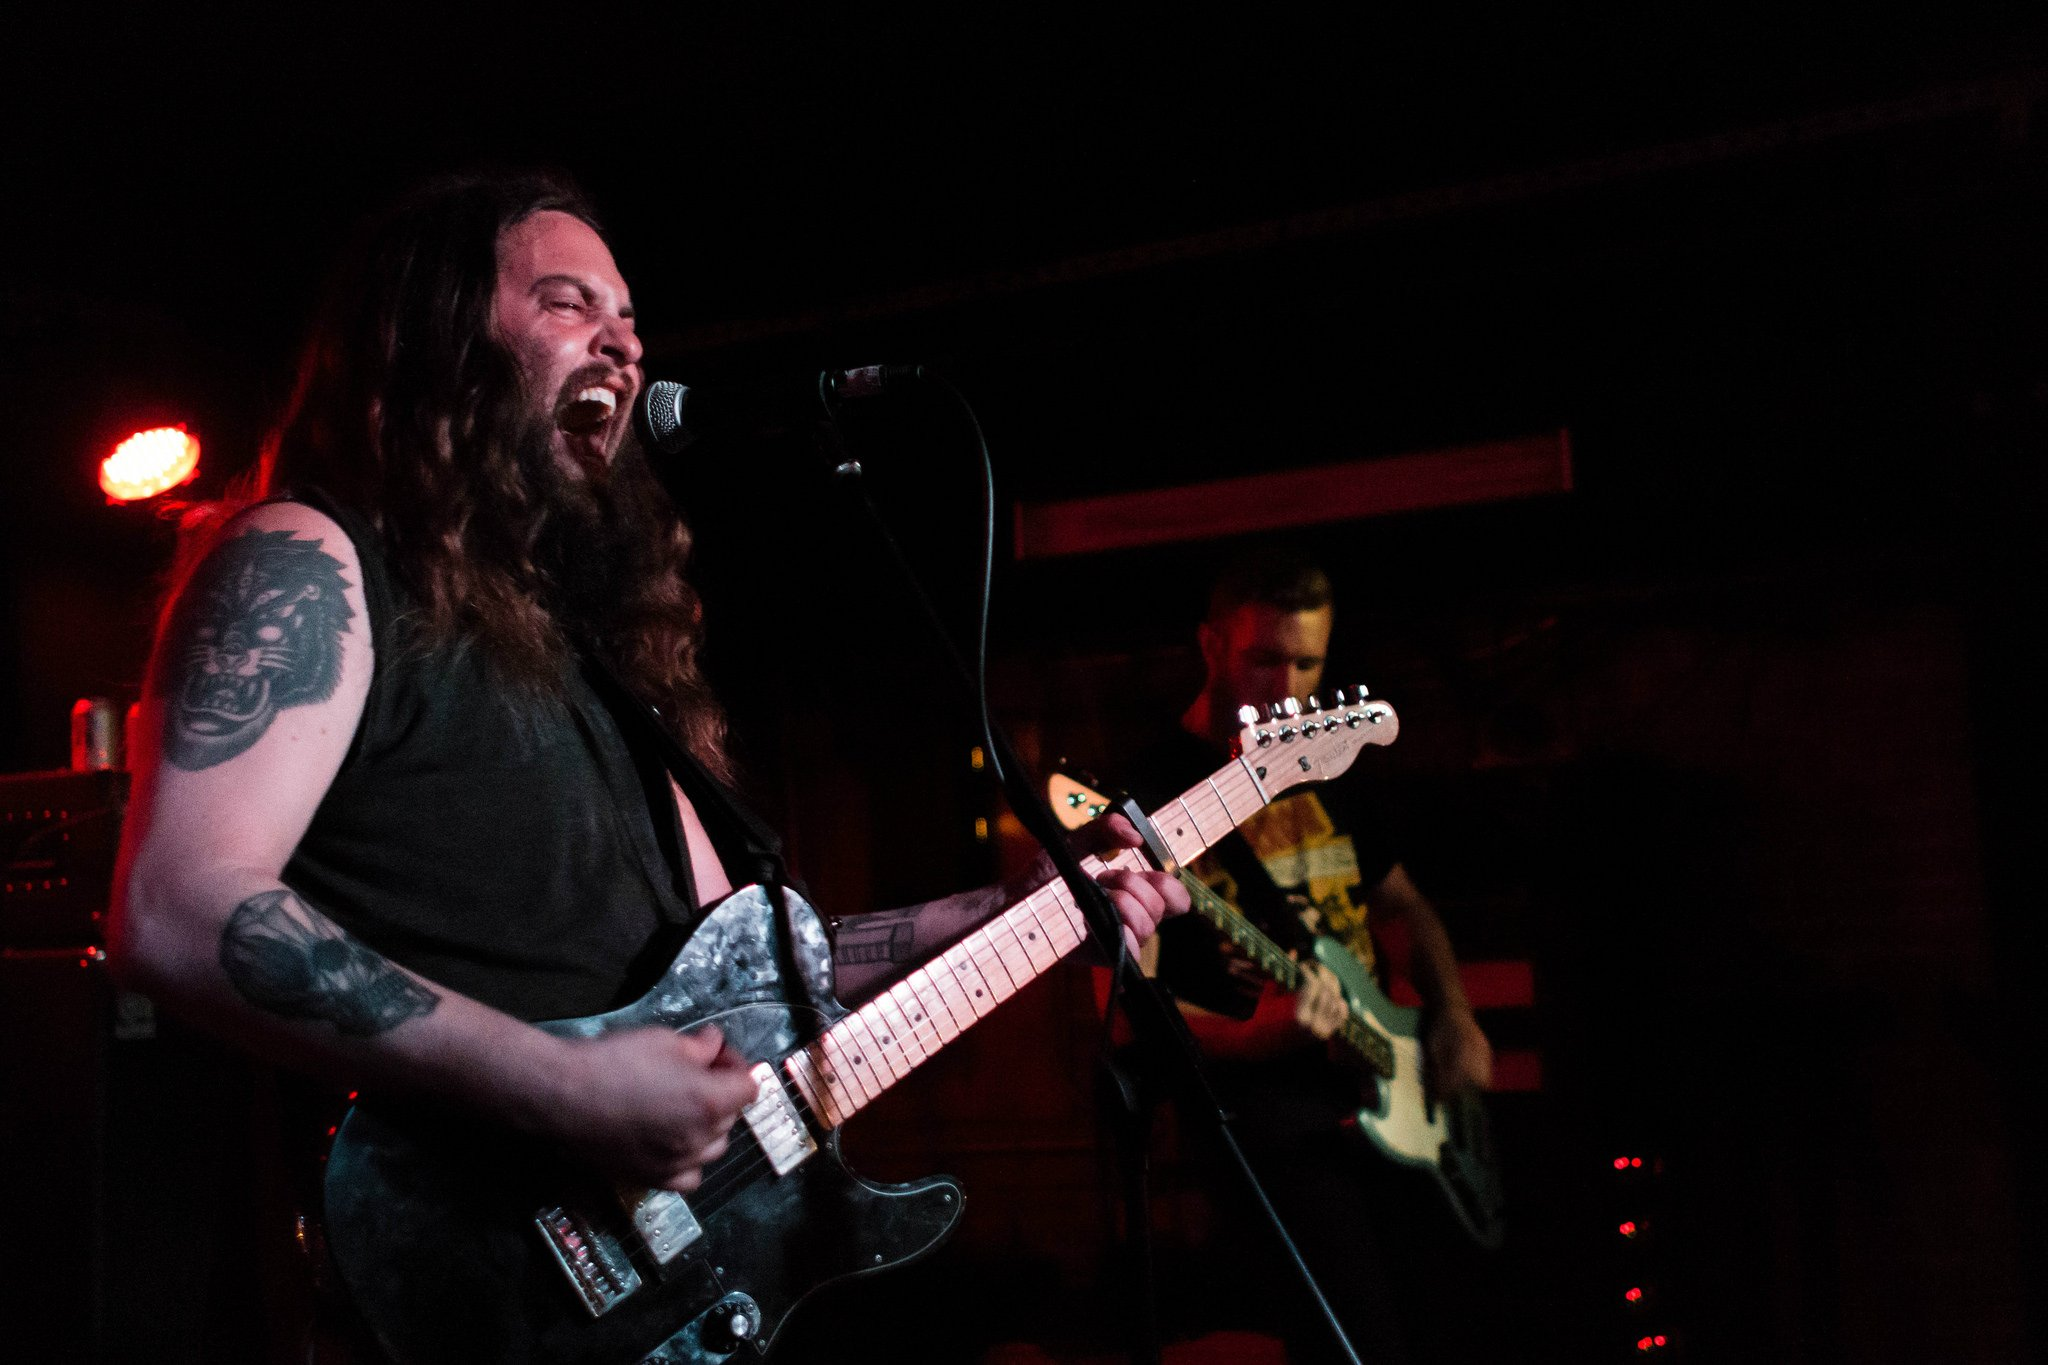 Strand-of-Oaks-Timothy-Showalter-guitar-Mercury-Lounge-NYC-2014